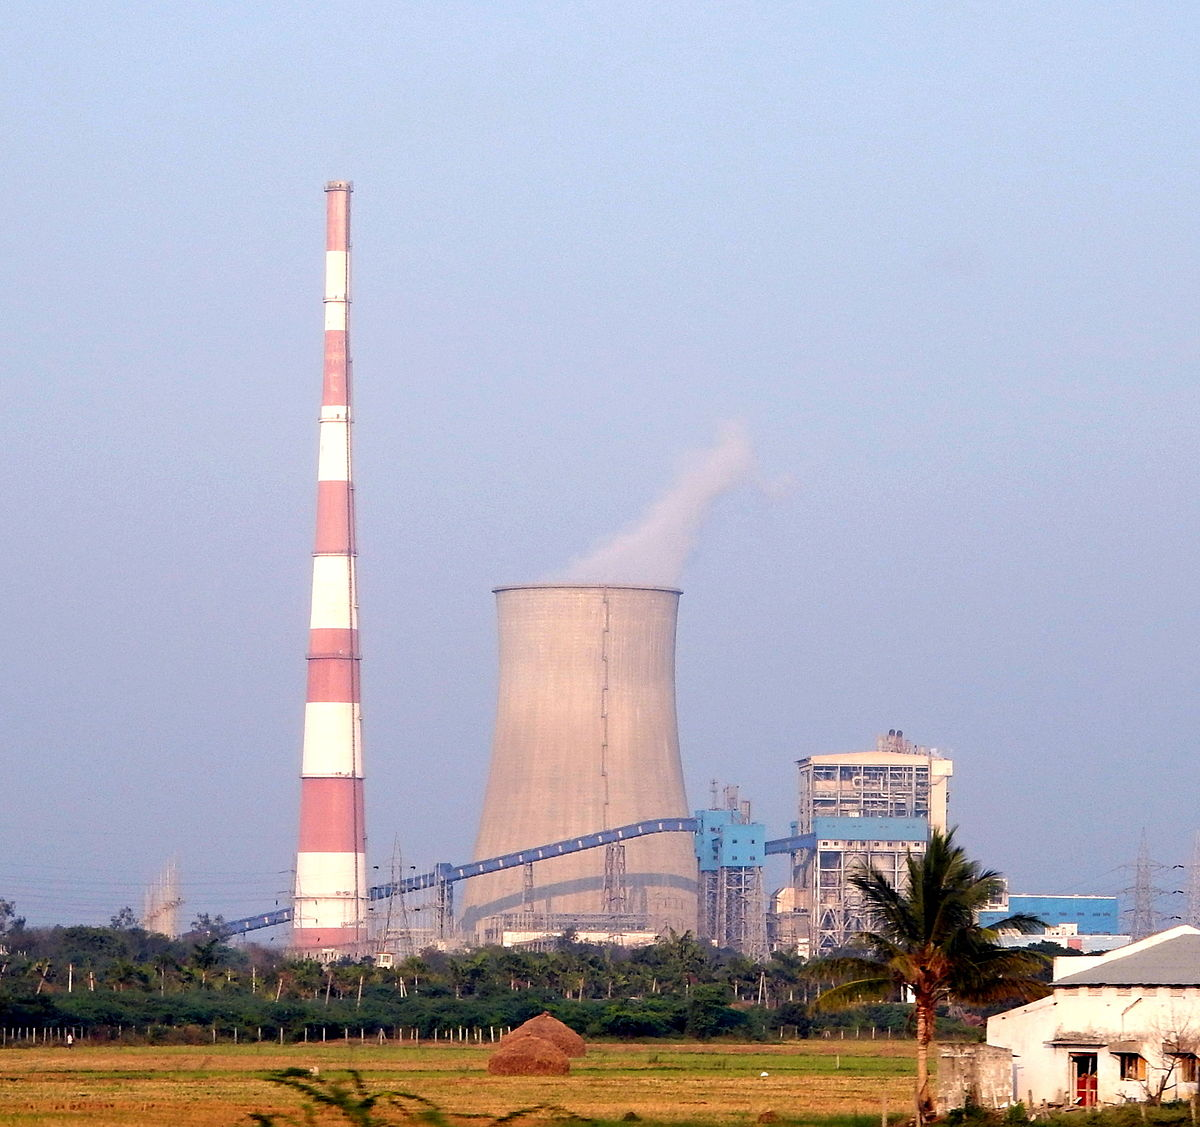 Thermal Power Station : Dr narla tata rao thermal power station wikipedia